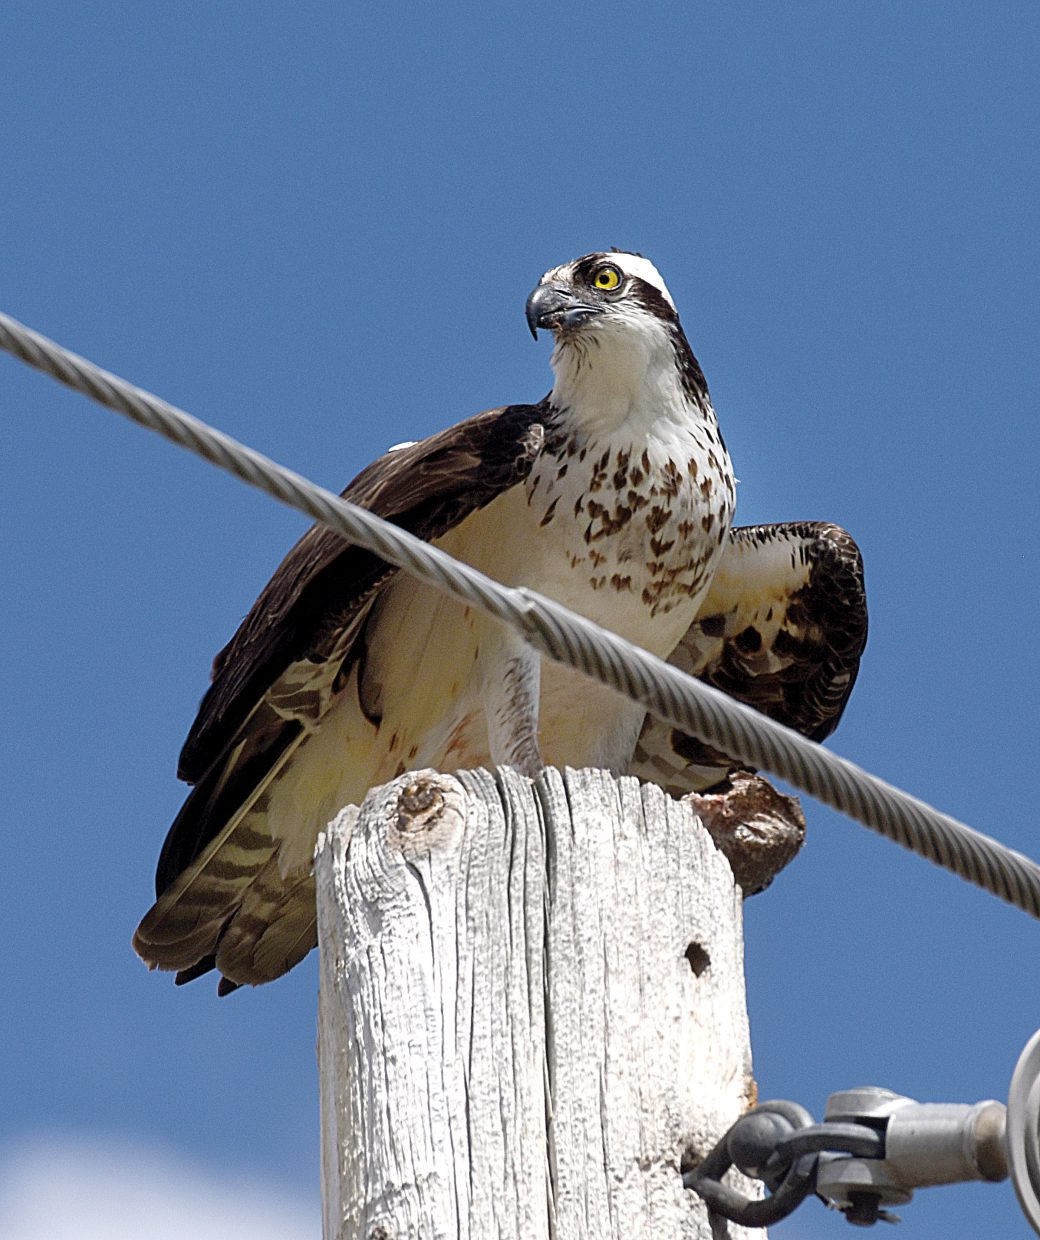 An osprey sits on a telephone pole south of Steamboat Springs Tuesday afternoon with a large fish clutched in its talon.